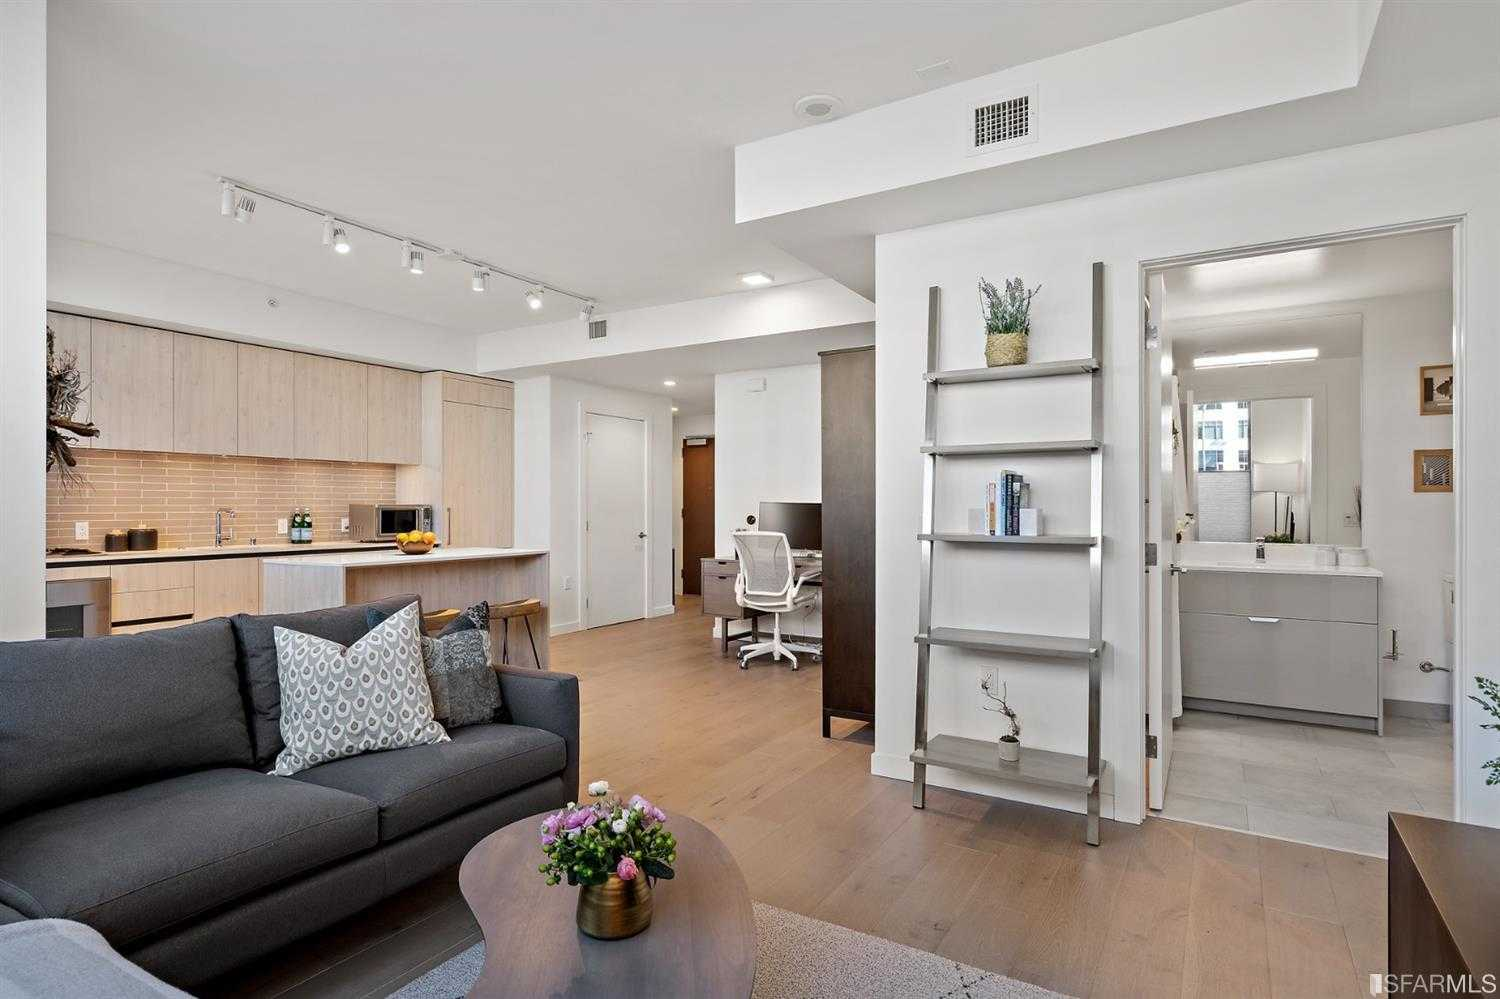 $1,098,000 - 1Br/1Ba -  for Sale in San Francisco